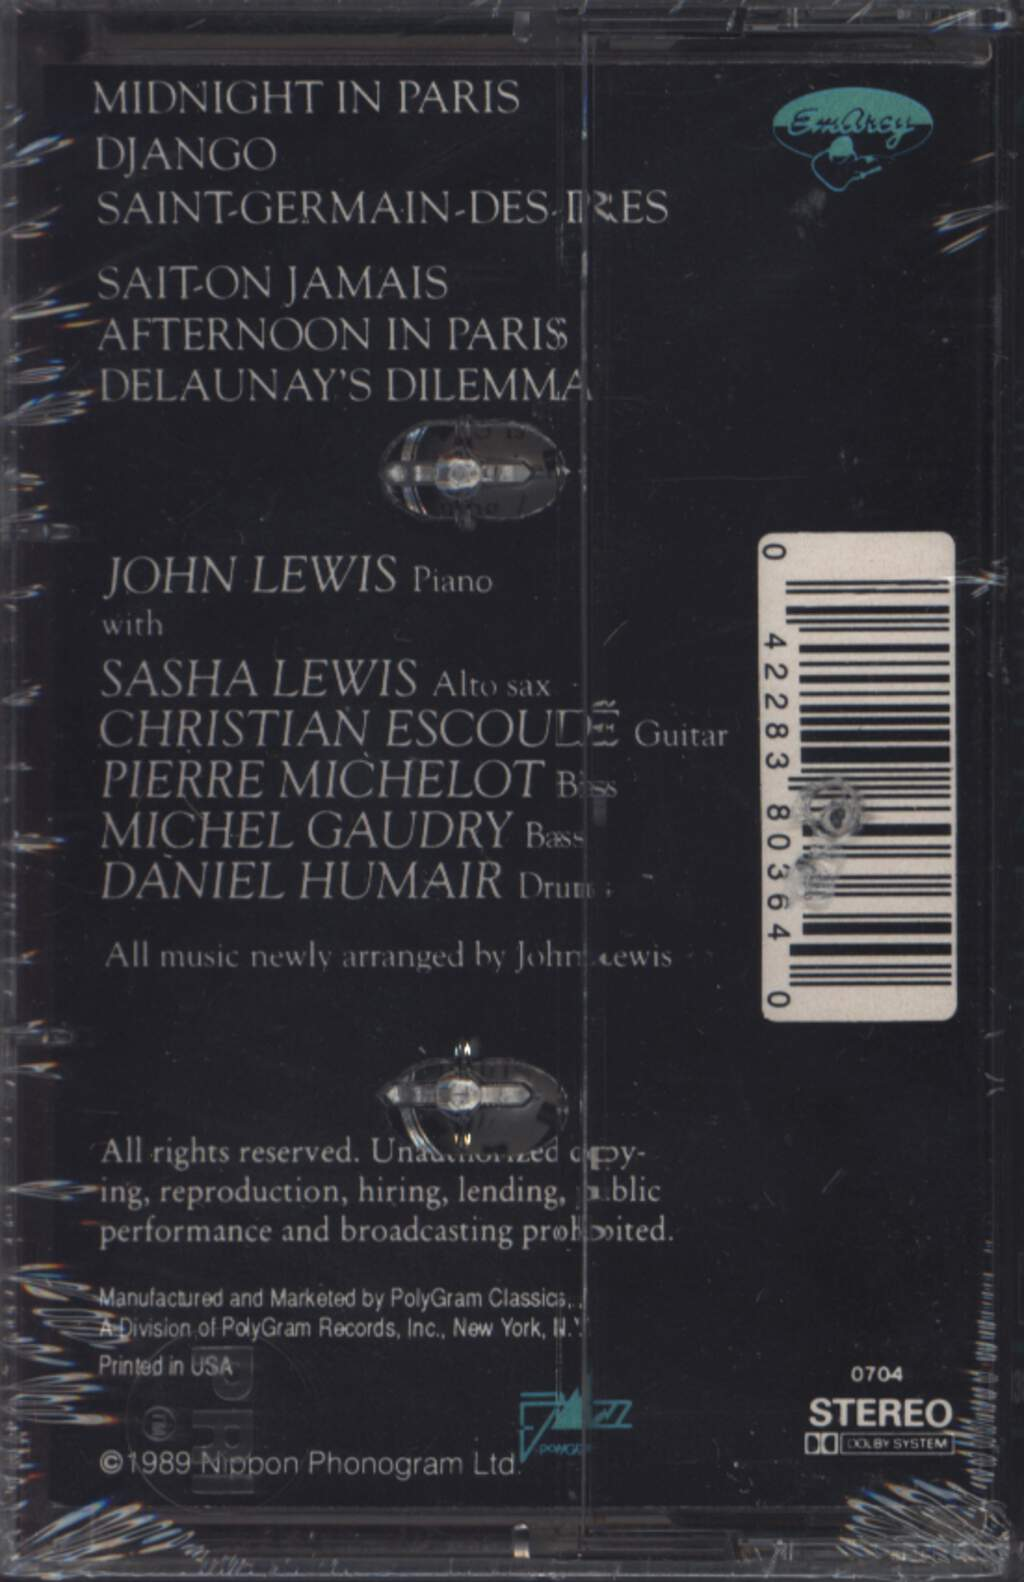 John Lewis: Midnight In Paris, Compact Cassette